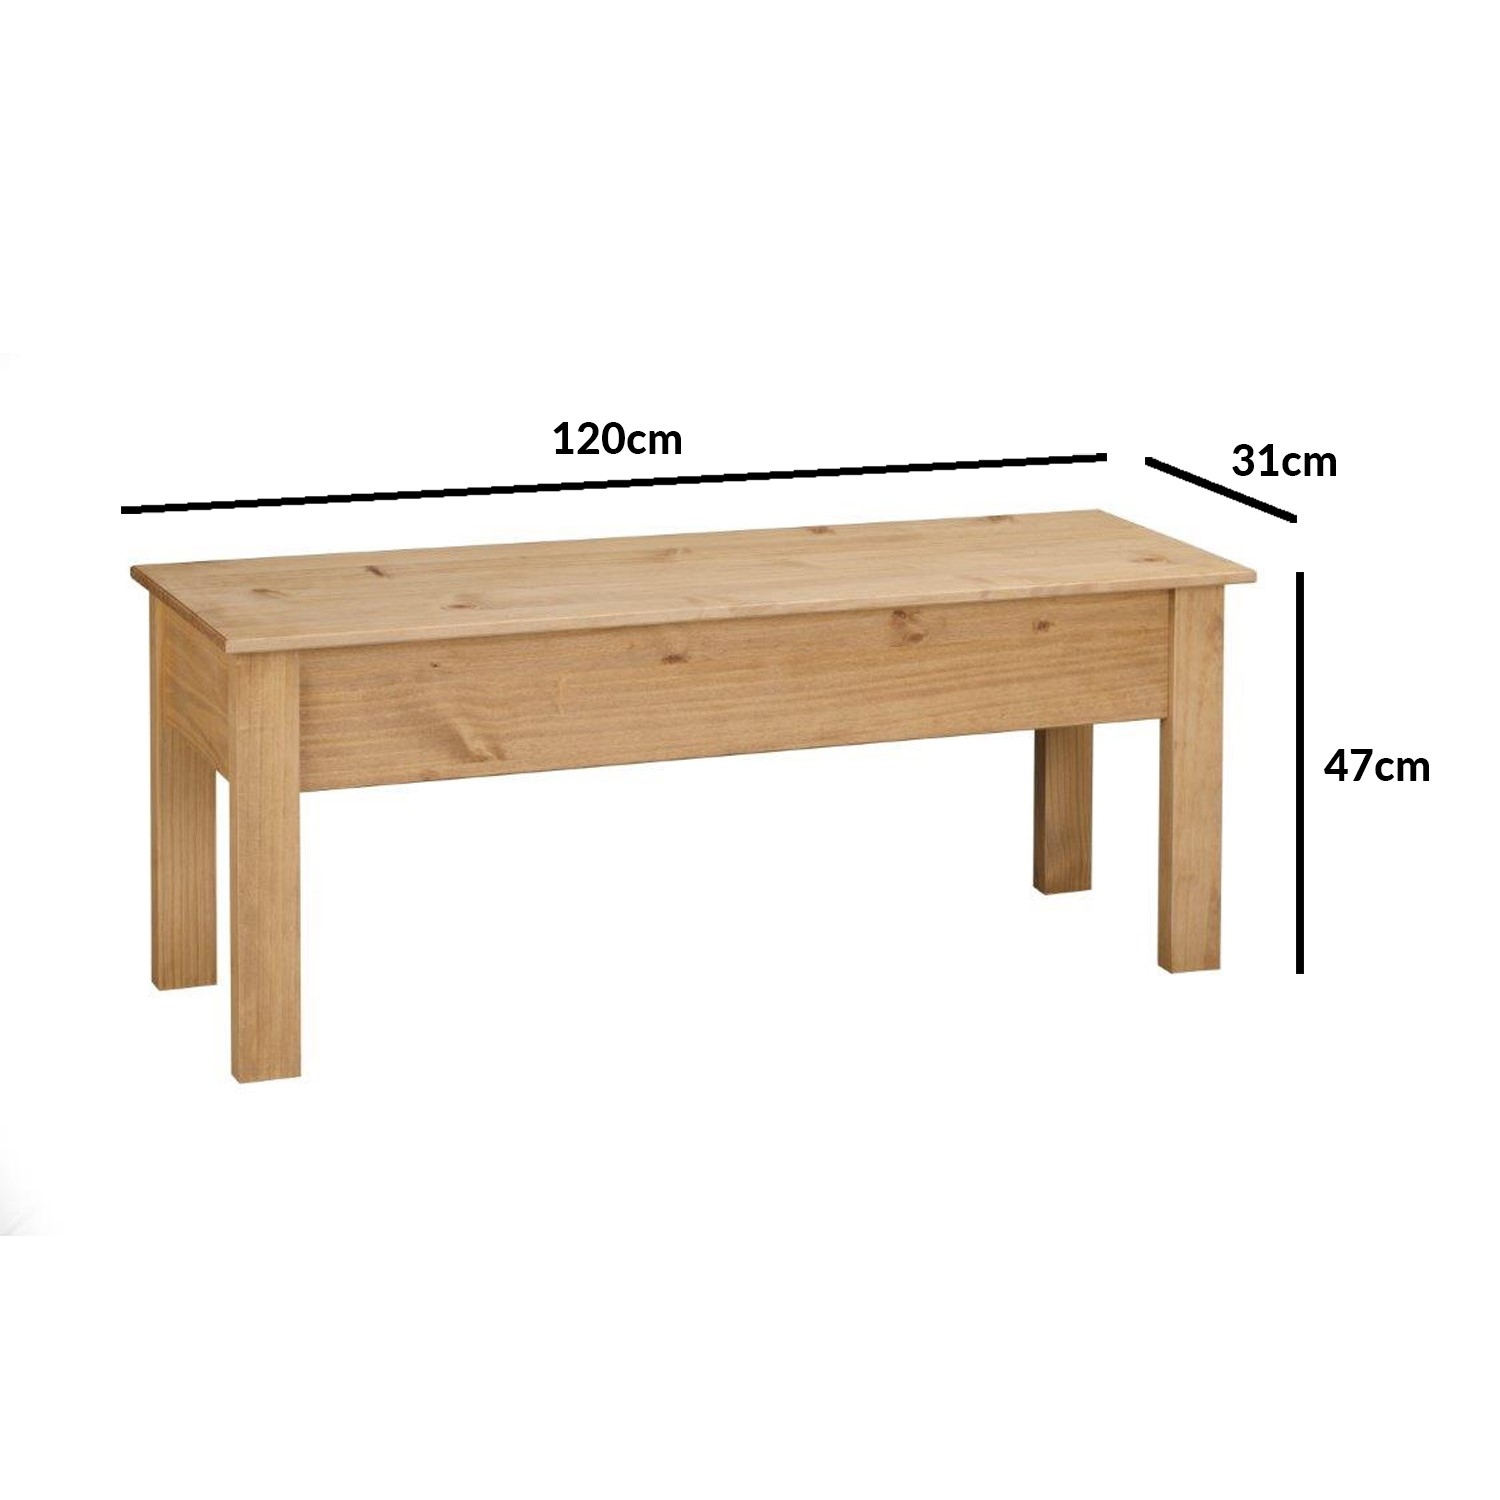 Solid Pine Dining Bench With Storage Seats 2 Emerson Furniture123